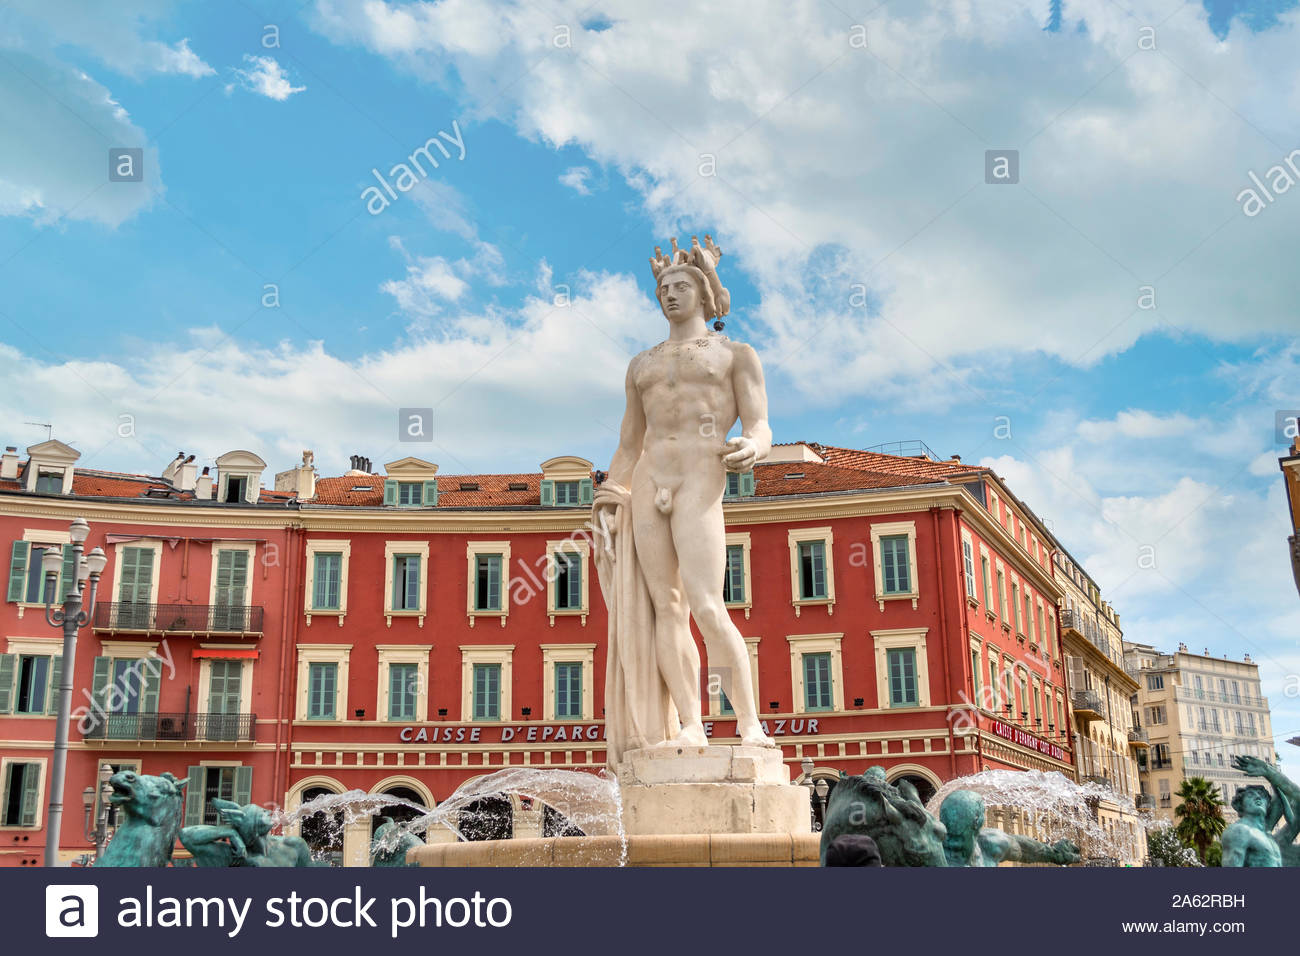 The Apollo Statue at the Fountain of the Sun in colorful Place Massena, in the city of Nice France, on the French Riviera. Stock Photo